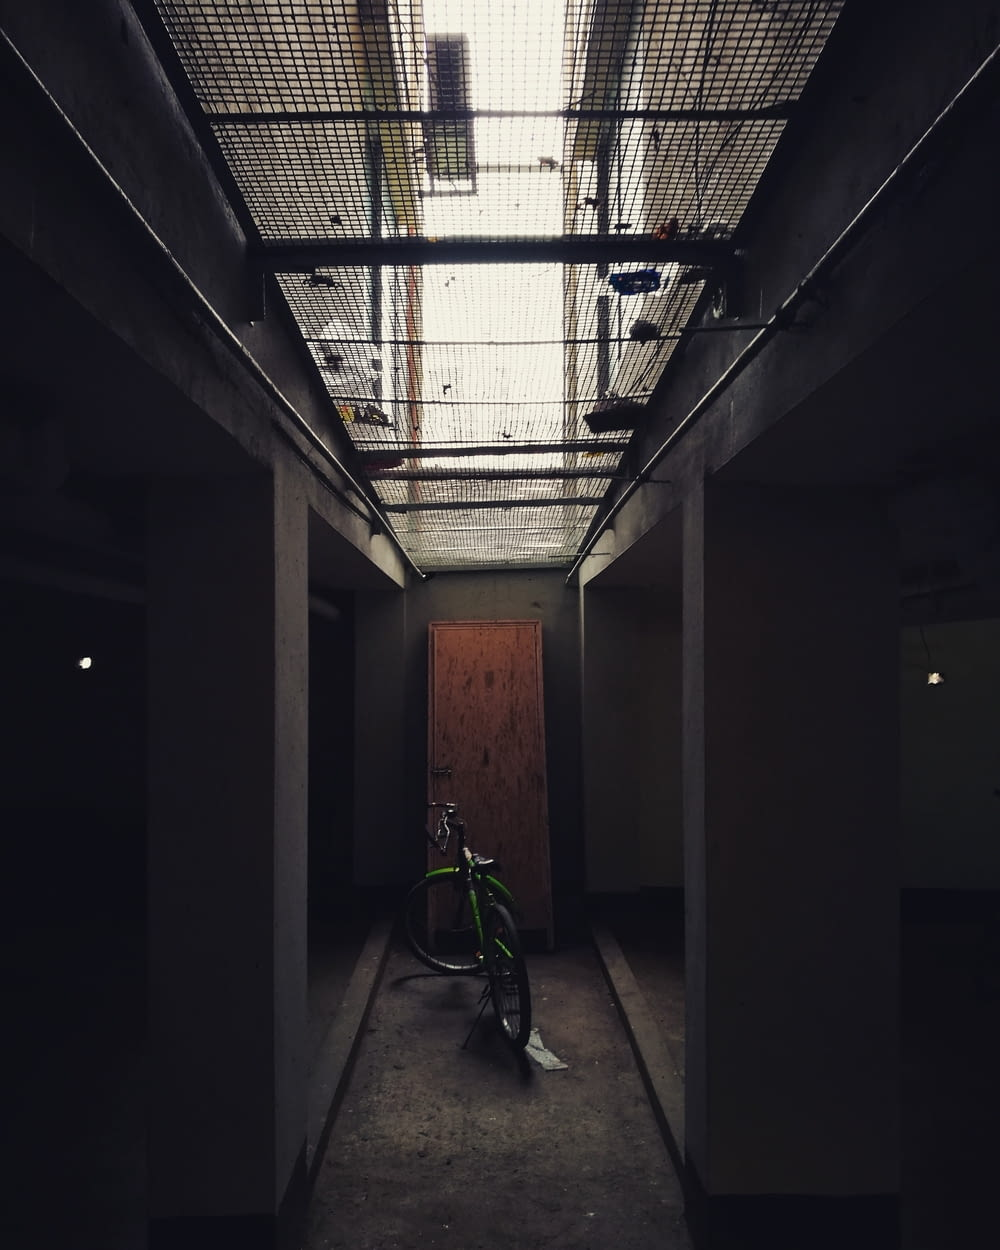 green bicycle parked on hallway